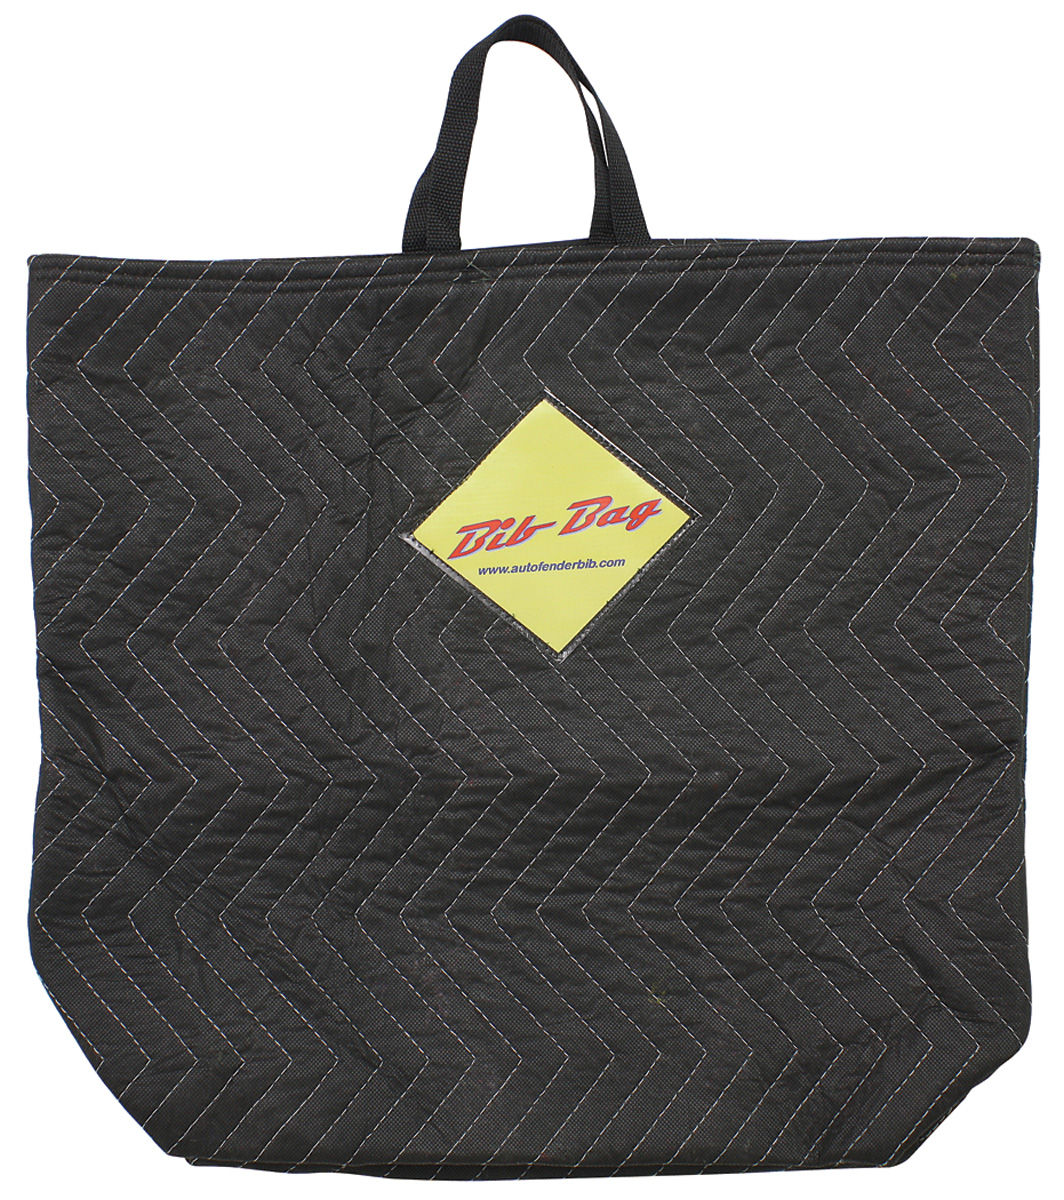 Photo of Fender Bib, Auto bag